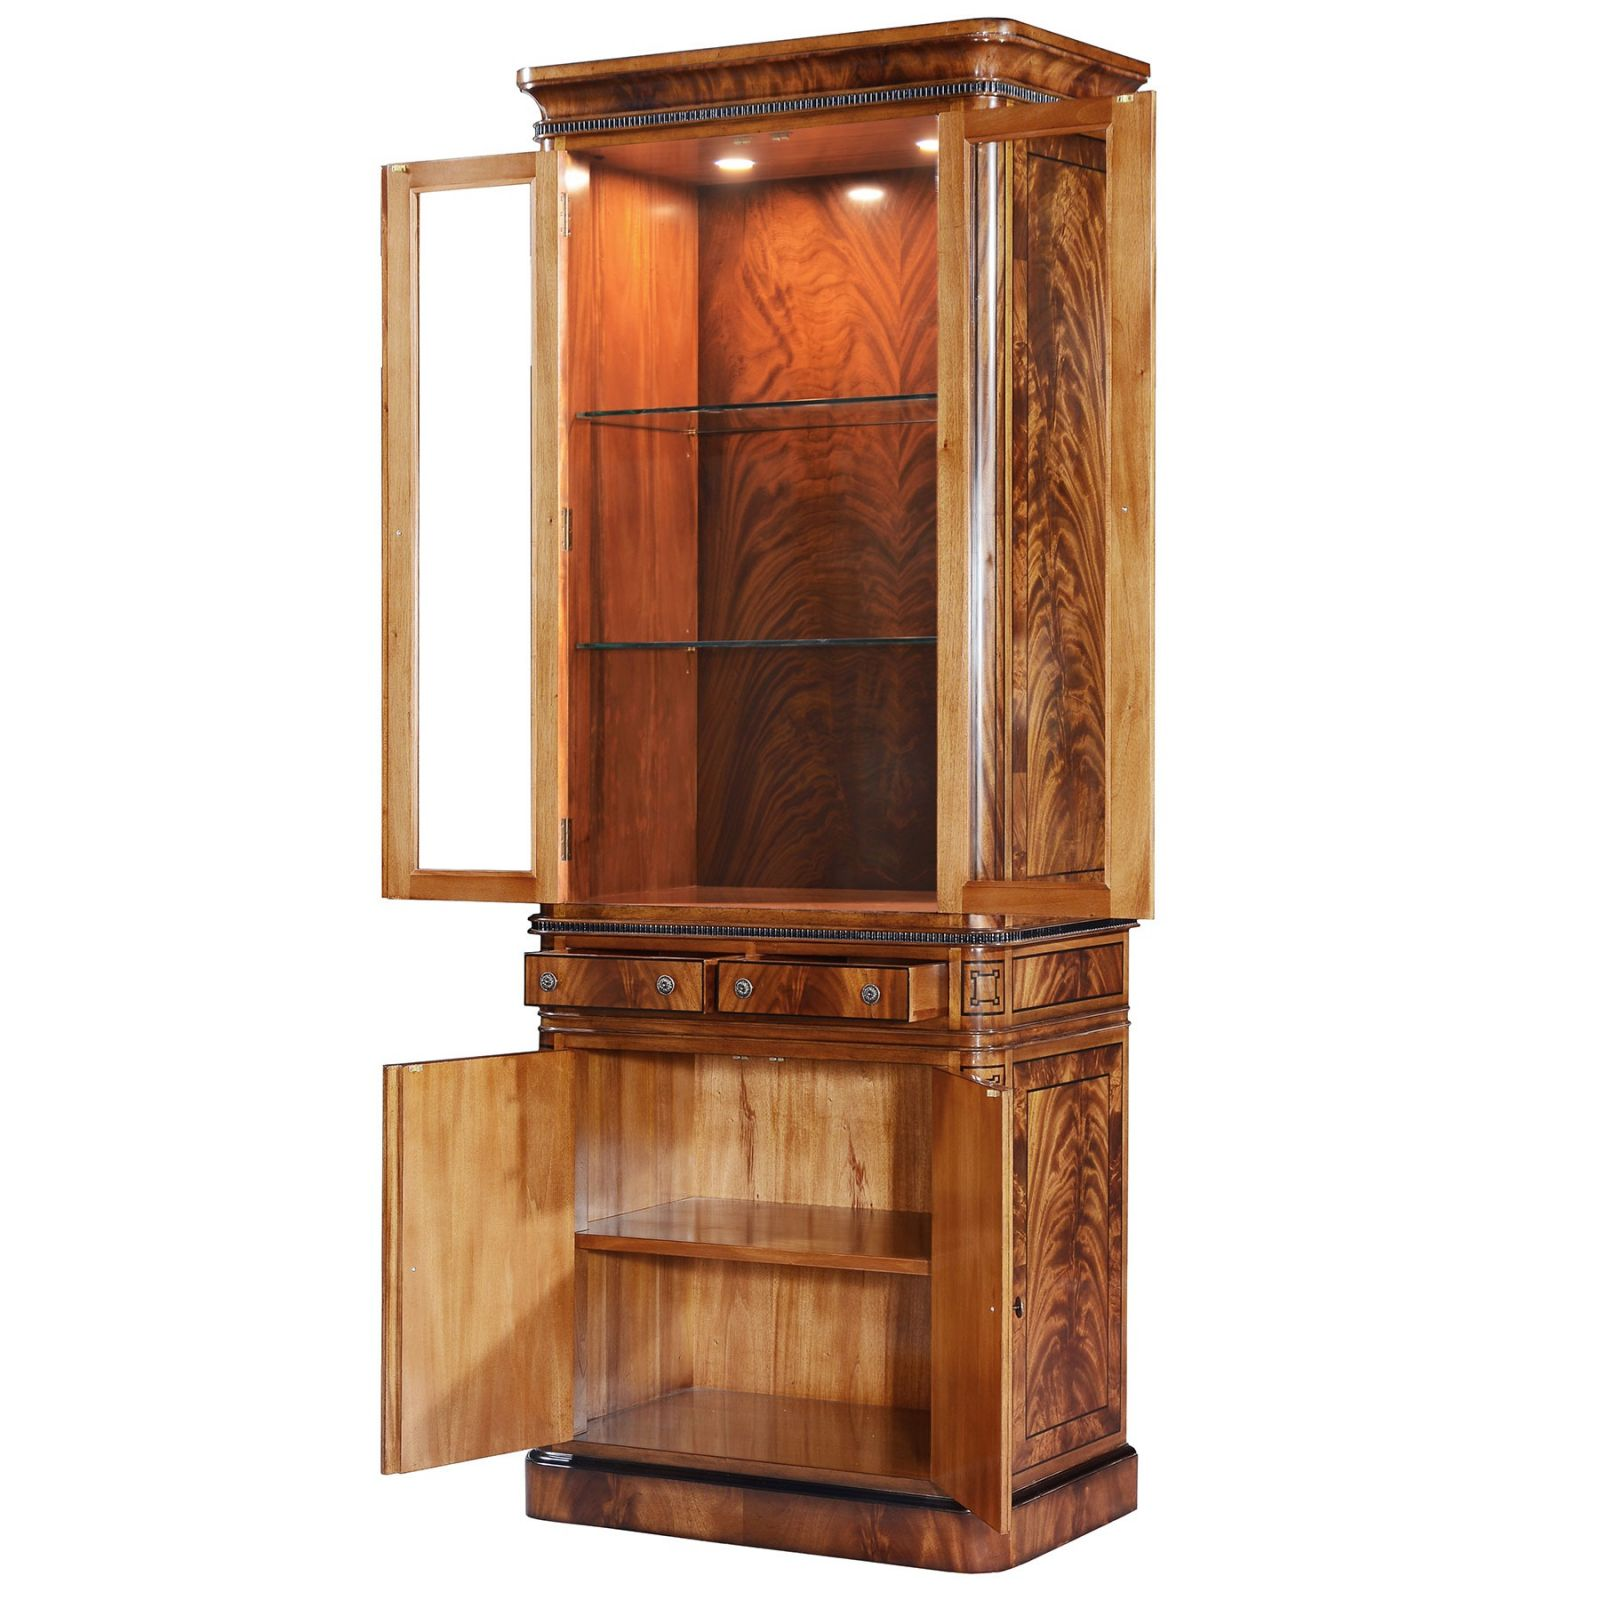 Thomas Hope style two door mahogany display cabinet